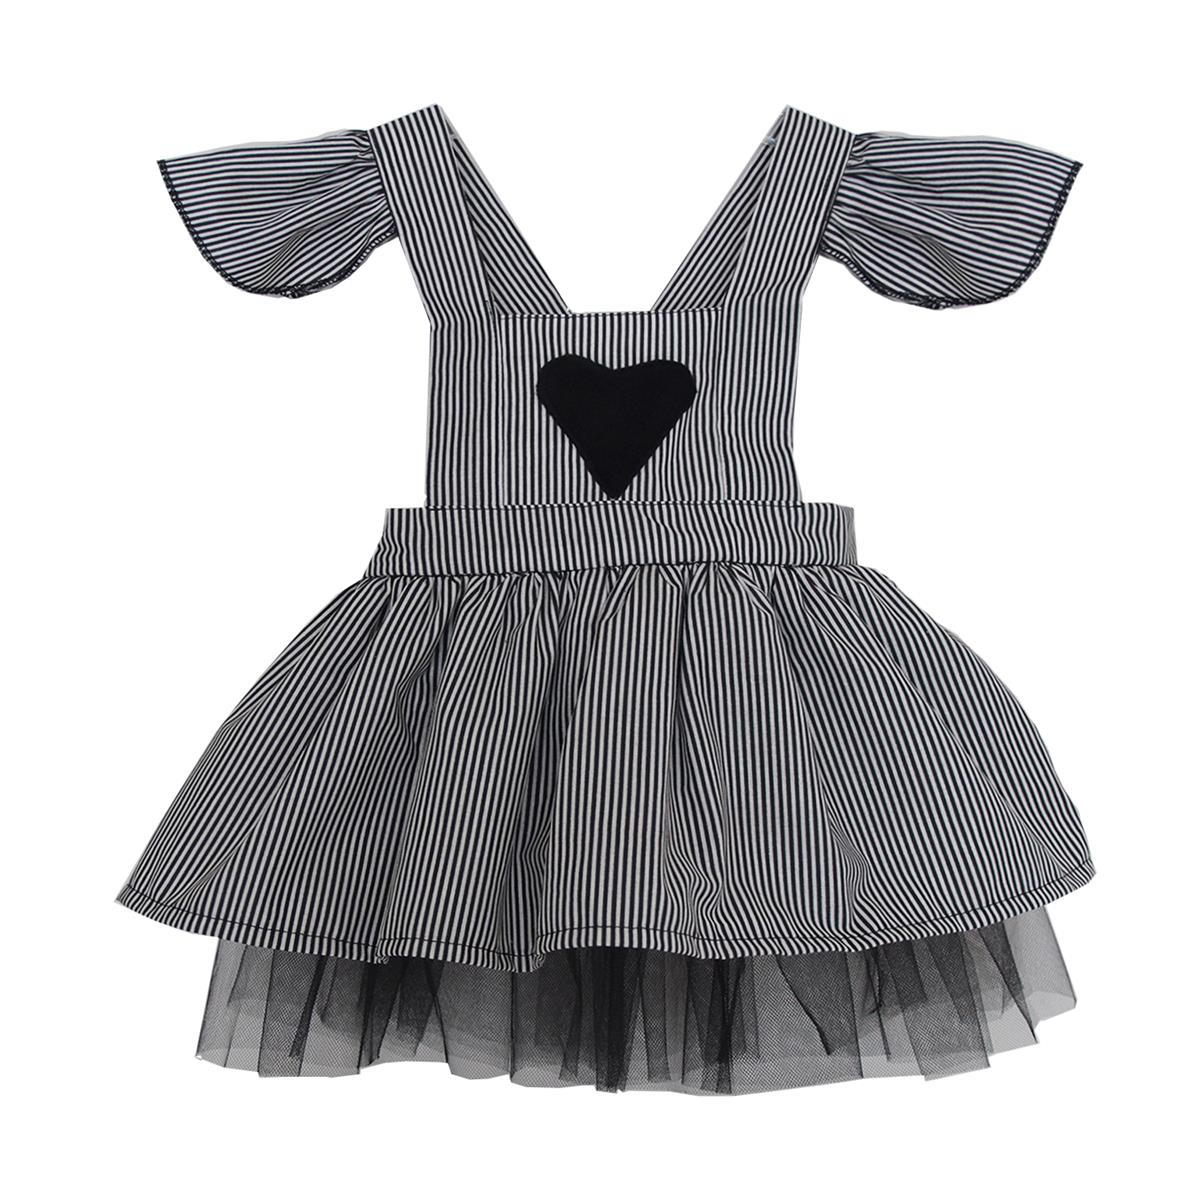 Shecco Babba Girls Dress-Hearted, Black-And-White